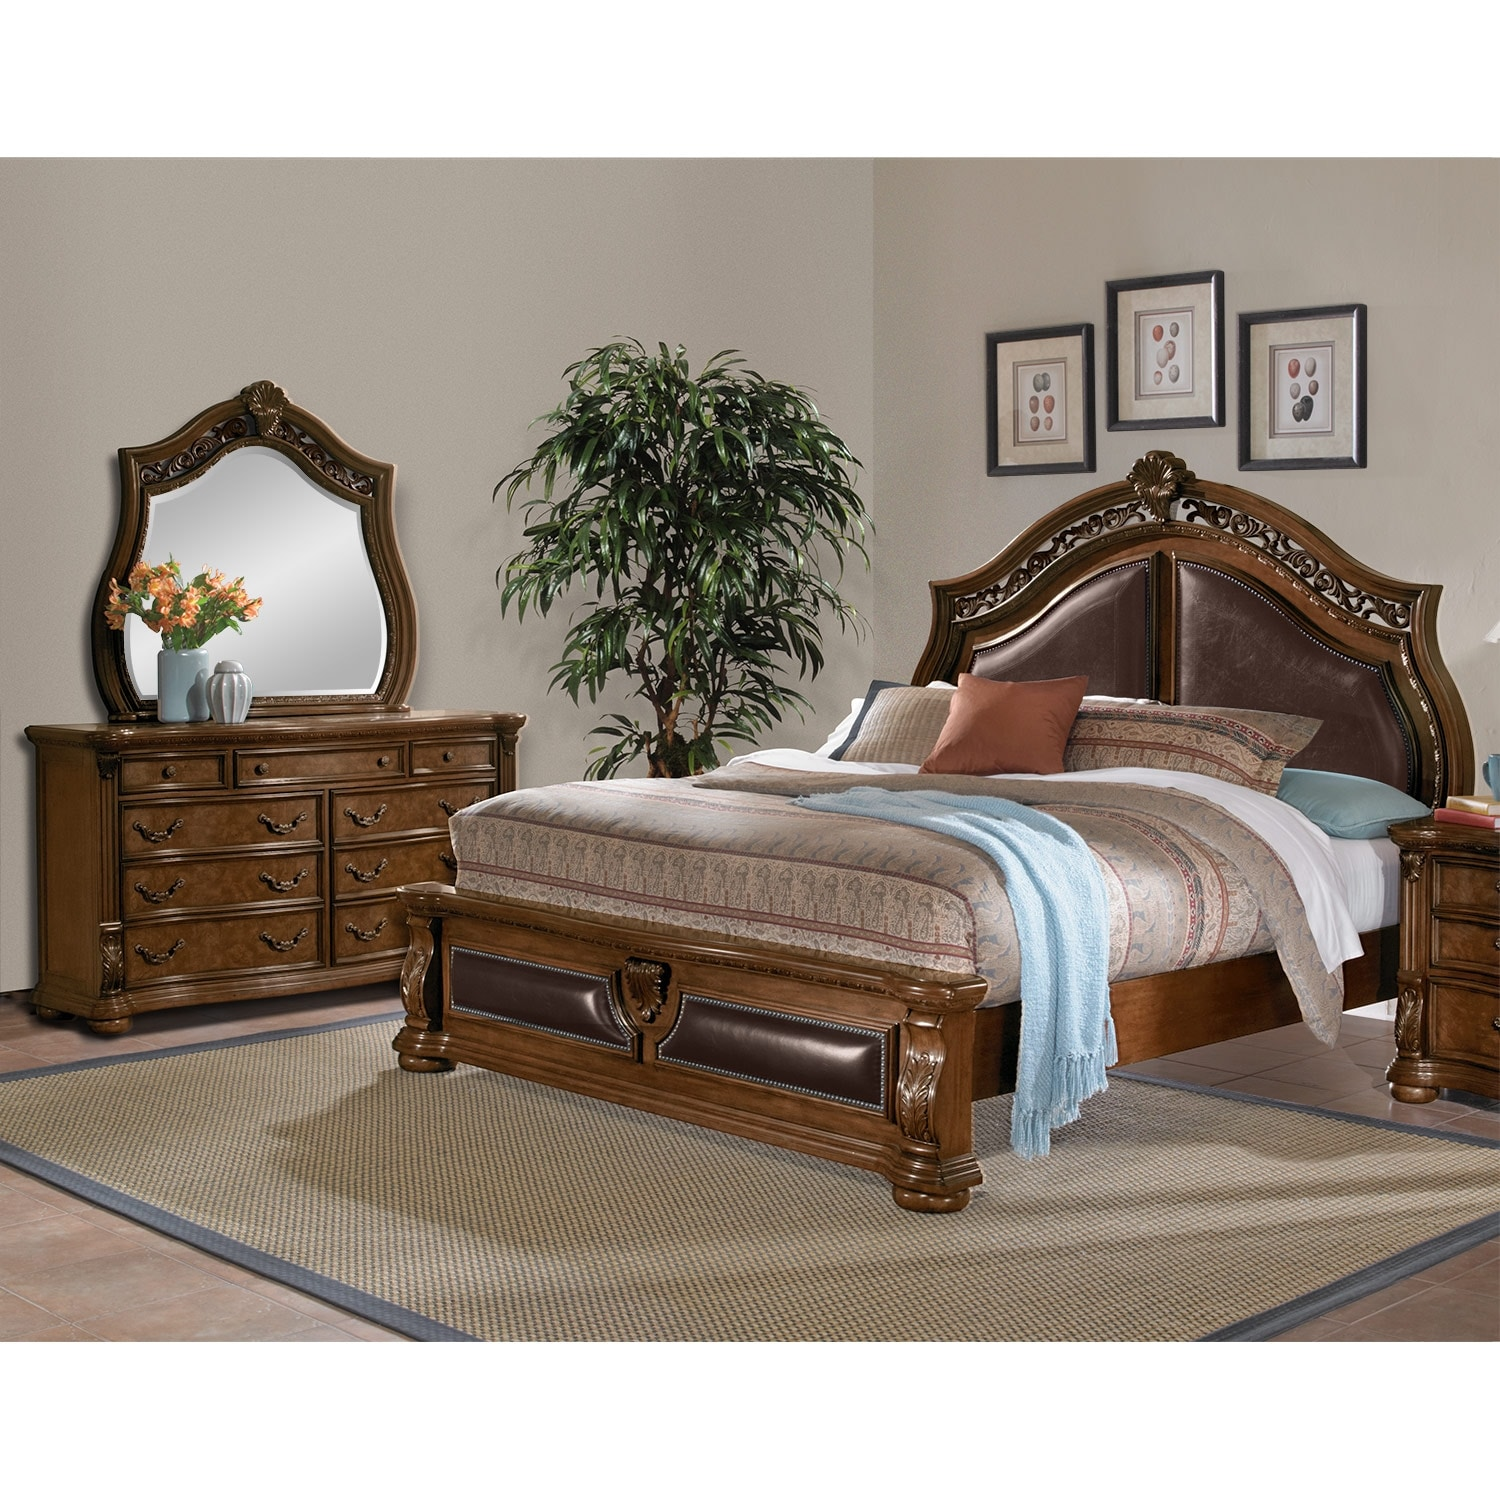 Morocco 5-Piece King Upholstered Bedroom Set